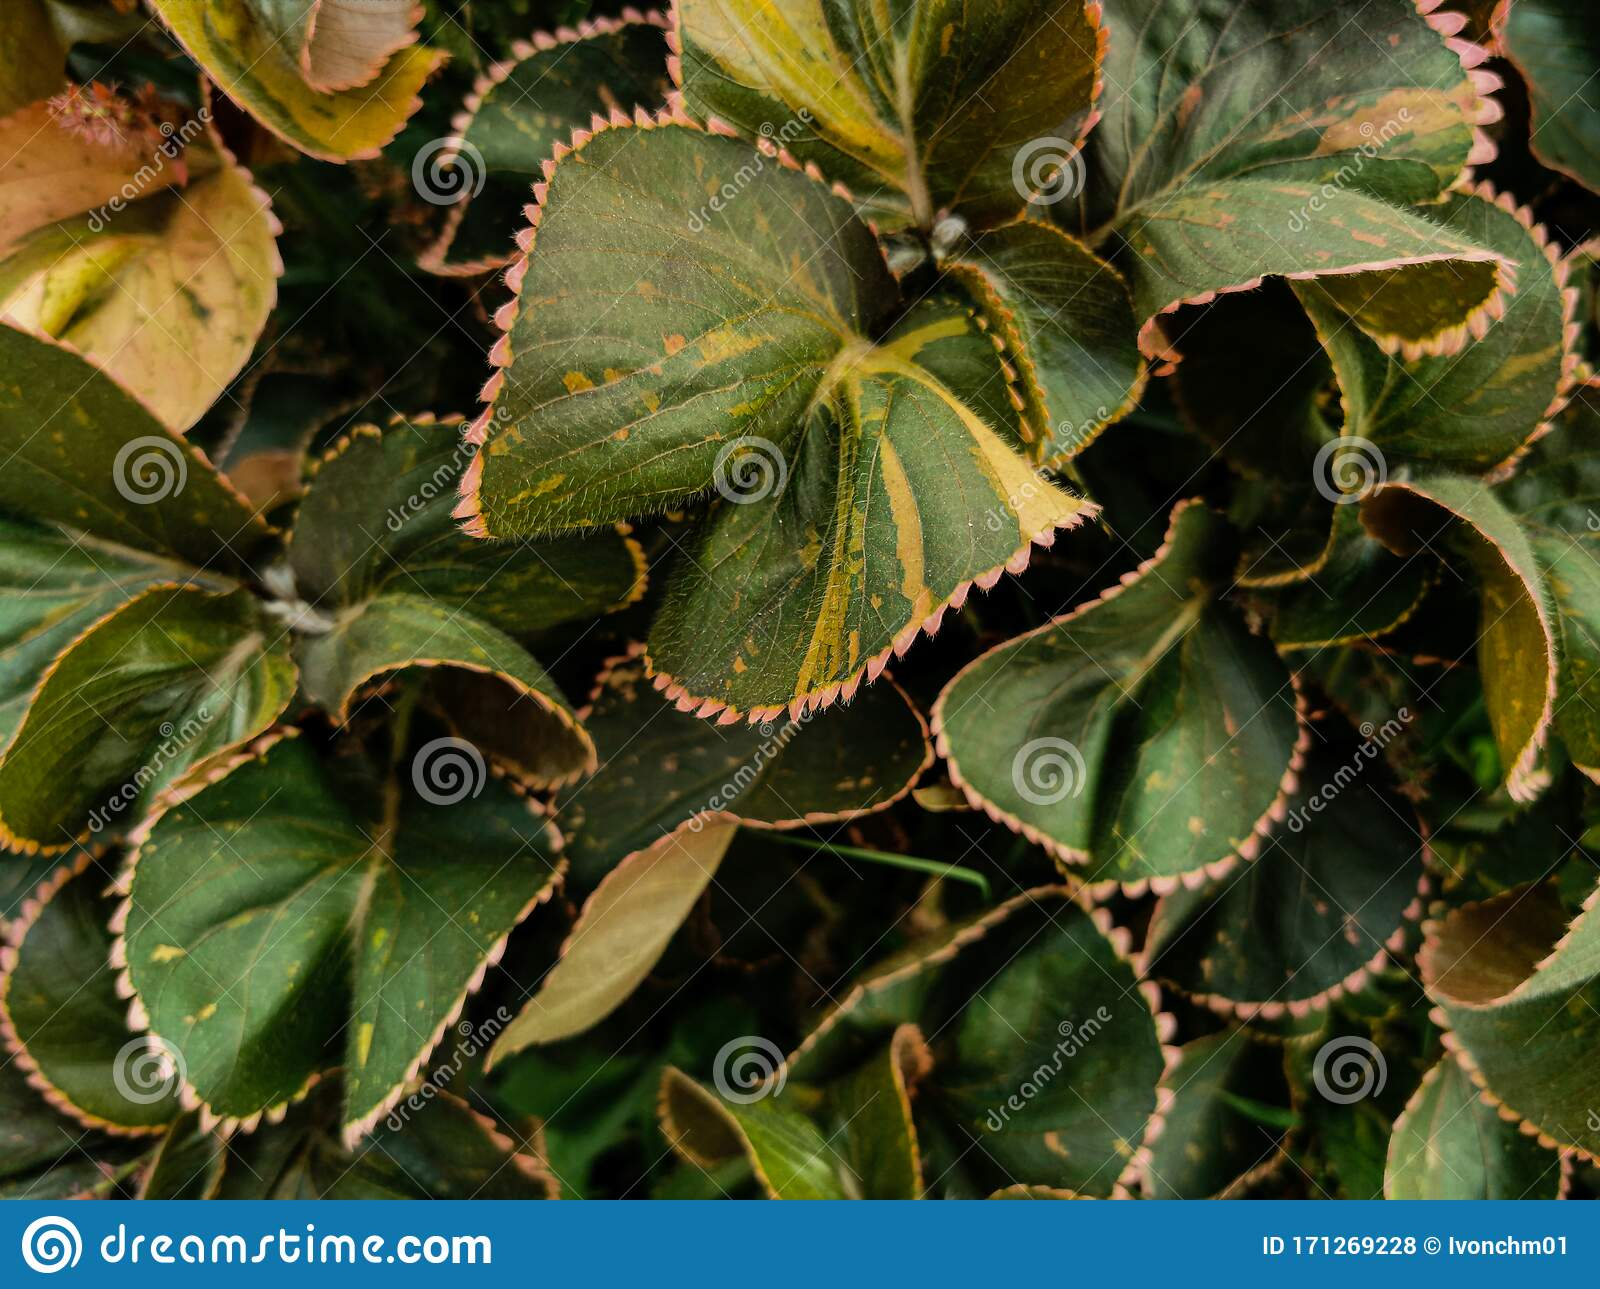 Nature View Of Acalypha Wilkesiana Plants With Common Names Copperleaf And Jacob S Coat Tropical Leaves Landscape For Stock Photo Image Of Detail Foliage 171269228 Tropical landscape design makes miami pop! https www dreamstime com nature view acalypha wilkesiana plants common names copperleaf jacob s coat tropical leaves landscape image171269228